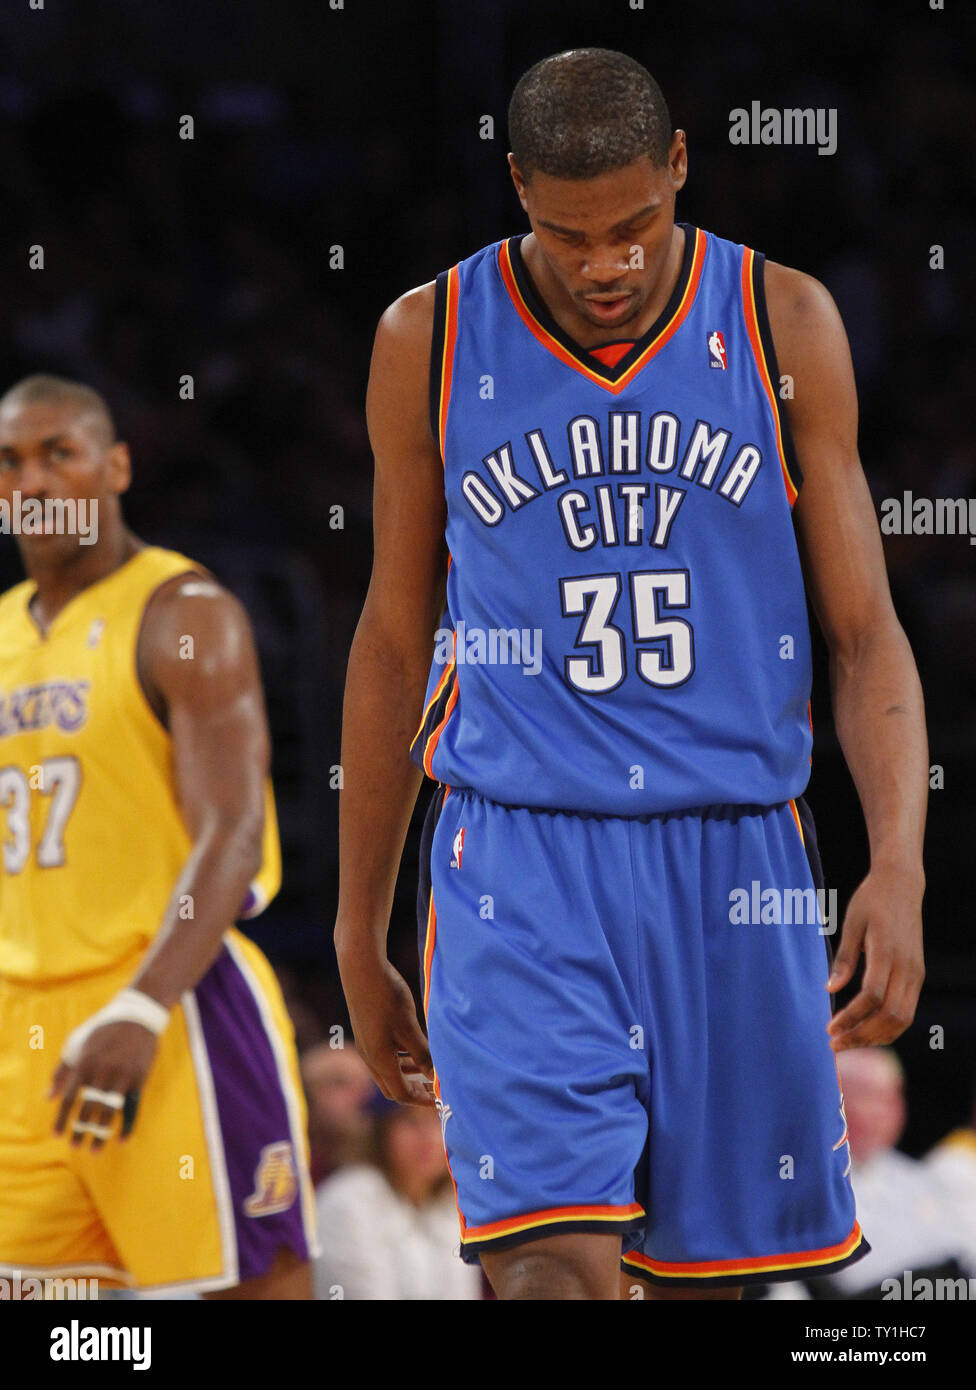 Oklahoma City Thunder forward Kevin Durant is dejected as Los Angeles Lakers' Ron Artest, left, watches at the end of the first half of Game 5 of their Western Conference playoff series at Staples Center in Los Angeles on April 27, 2010. The Lakers won 111-87. UPI Photo/Lori Shepler Stock Photo